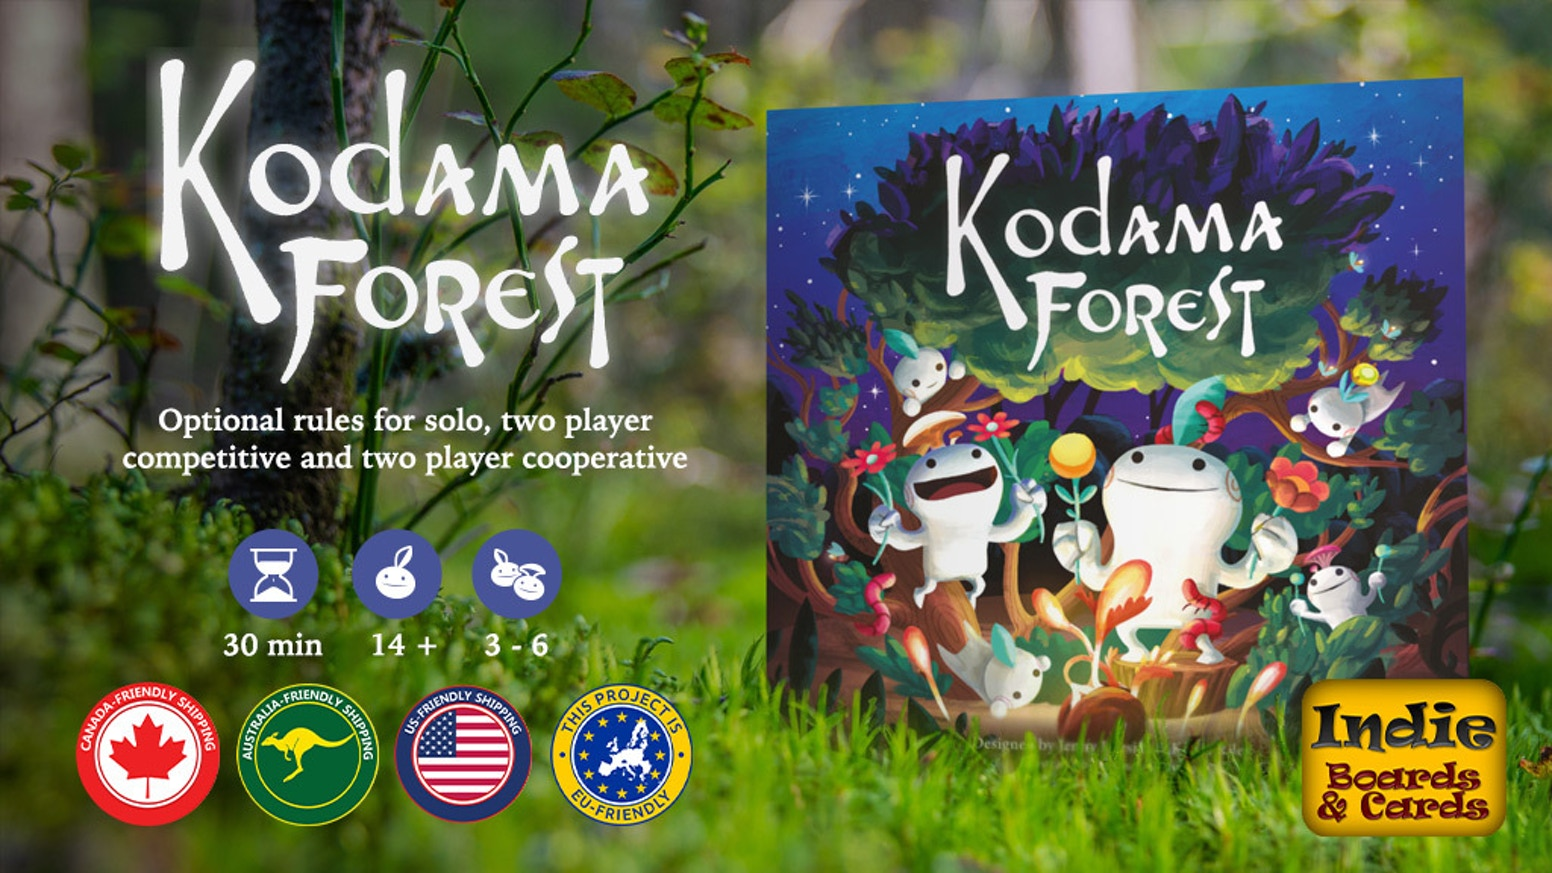 The next game in the Kodamaverse with all-new gameplay! Work together to grow the forest for your Kodama & their forest friends!